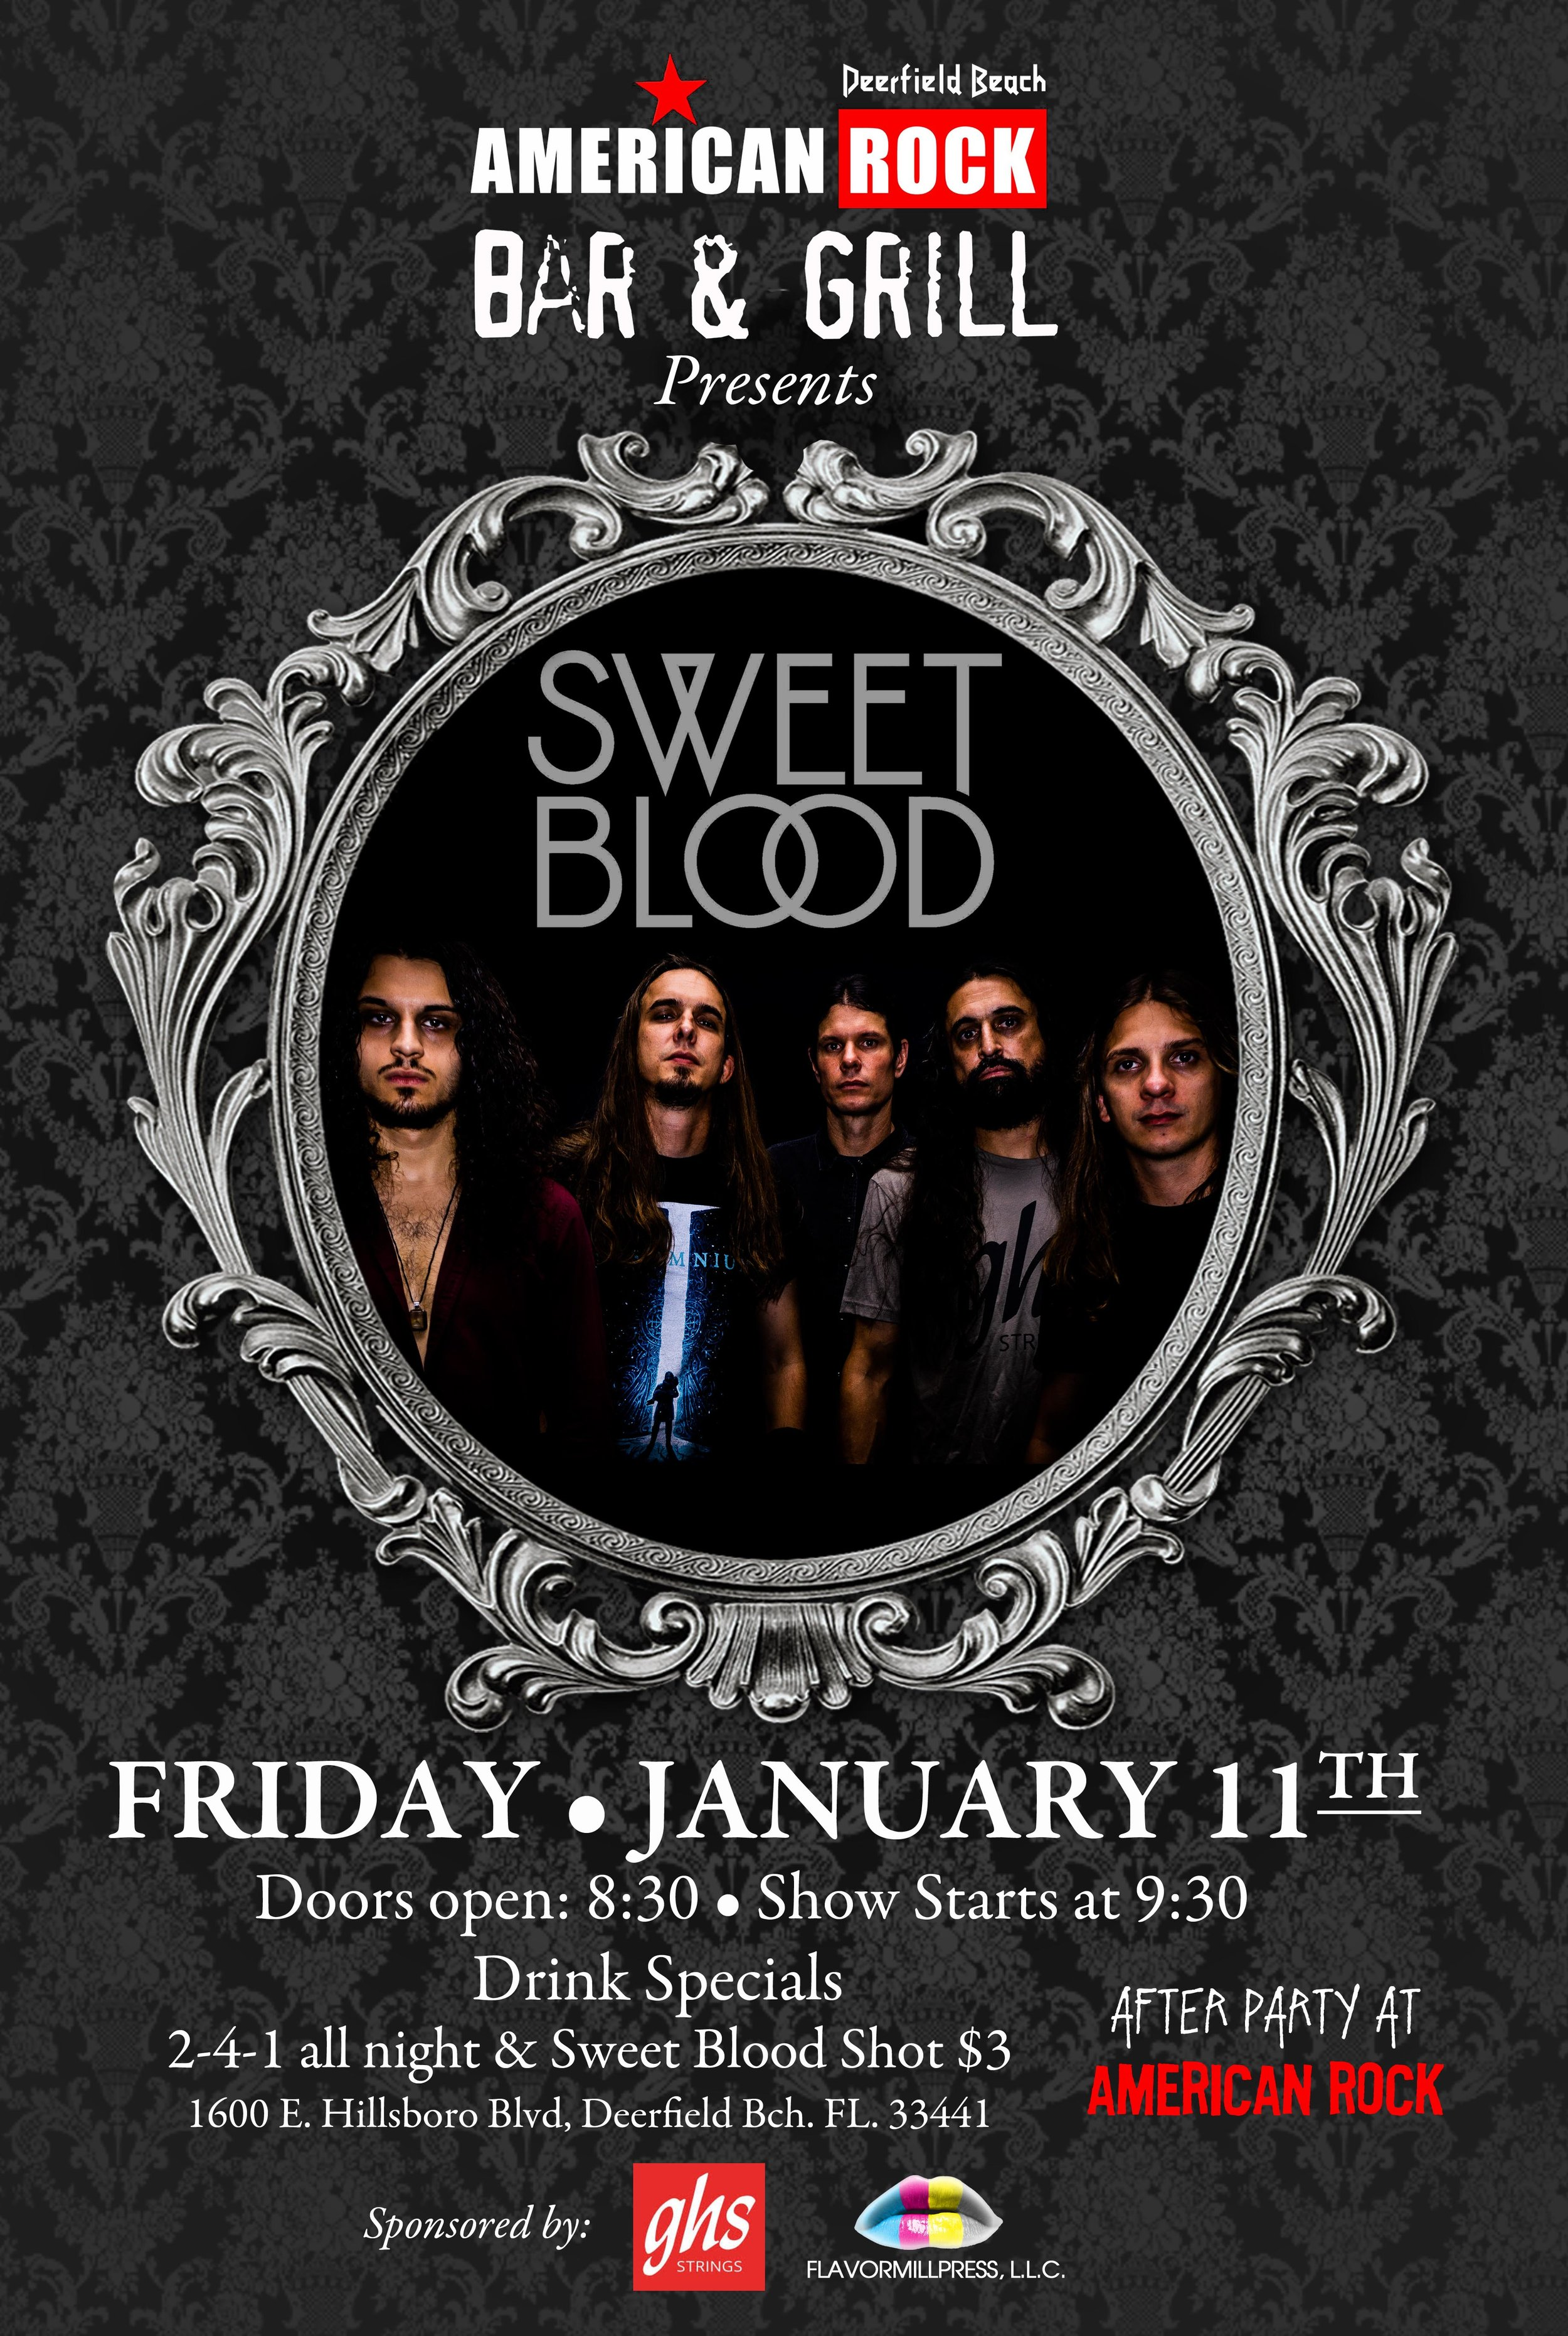 Sweet Blood Live - 01/11/19 - American Rock Bar & Grill1600 E. Hillsboro Blvd. Deerfield Beach, FL 33441